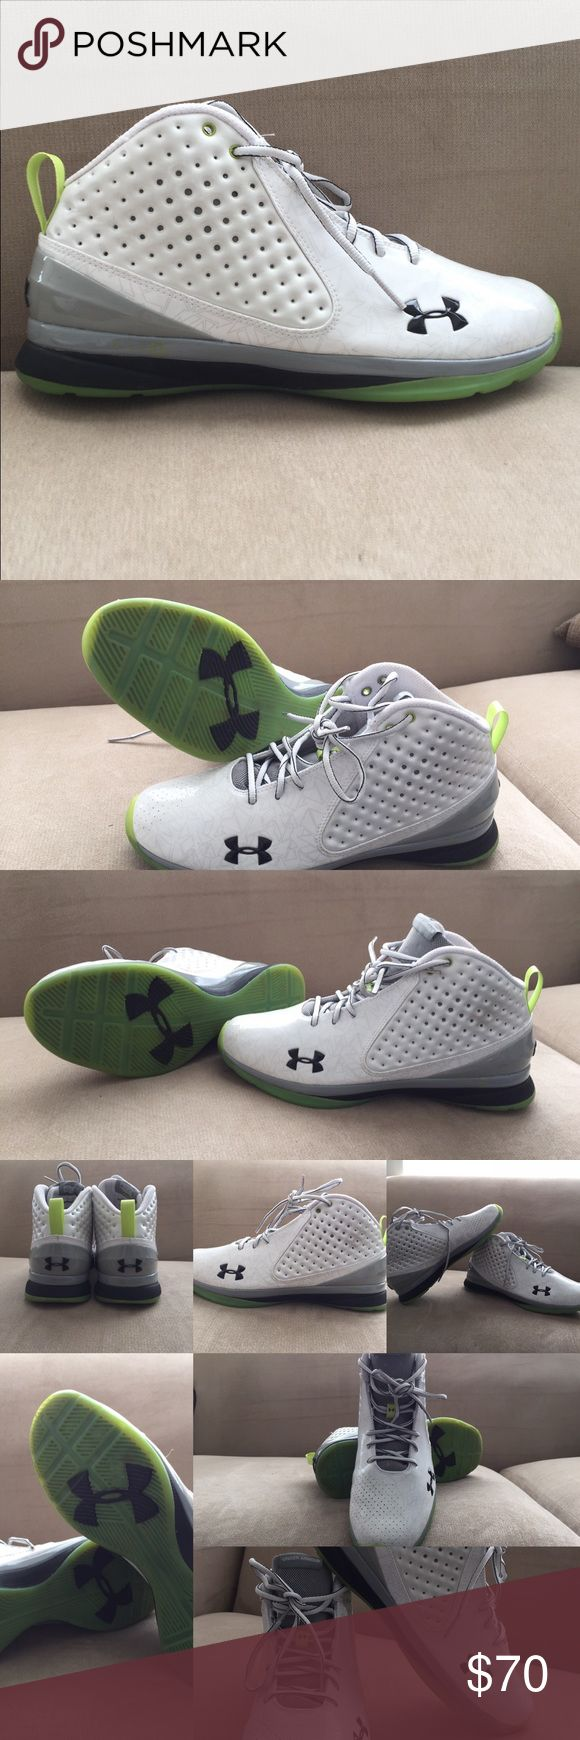 Under Armour Micro G men's Basketball shoe. Brand New never used!!only try on. White and green color size 11. Under Armour Shoes Athletic Shoes